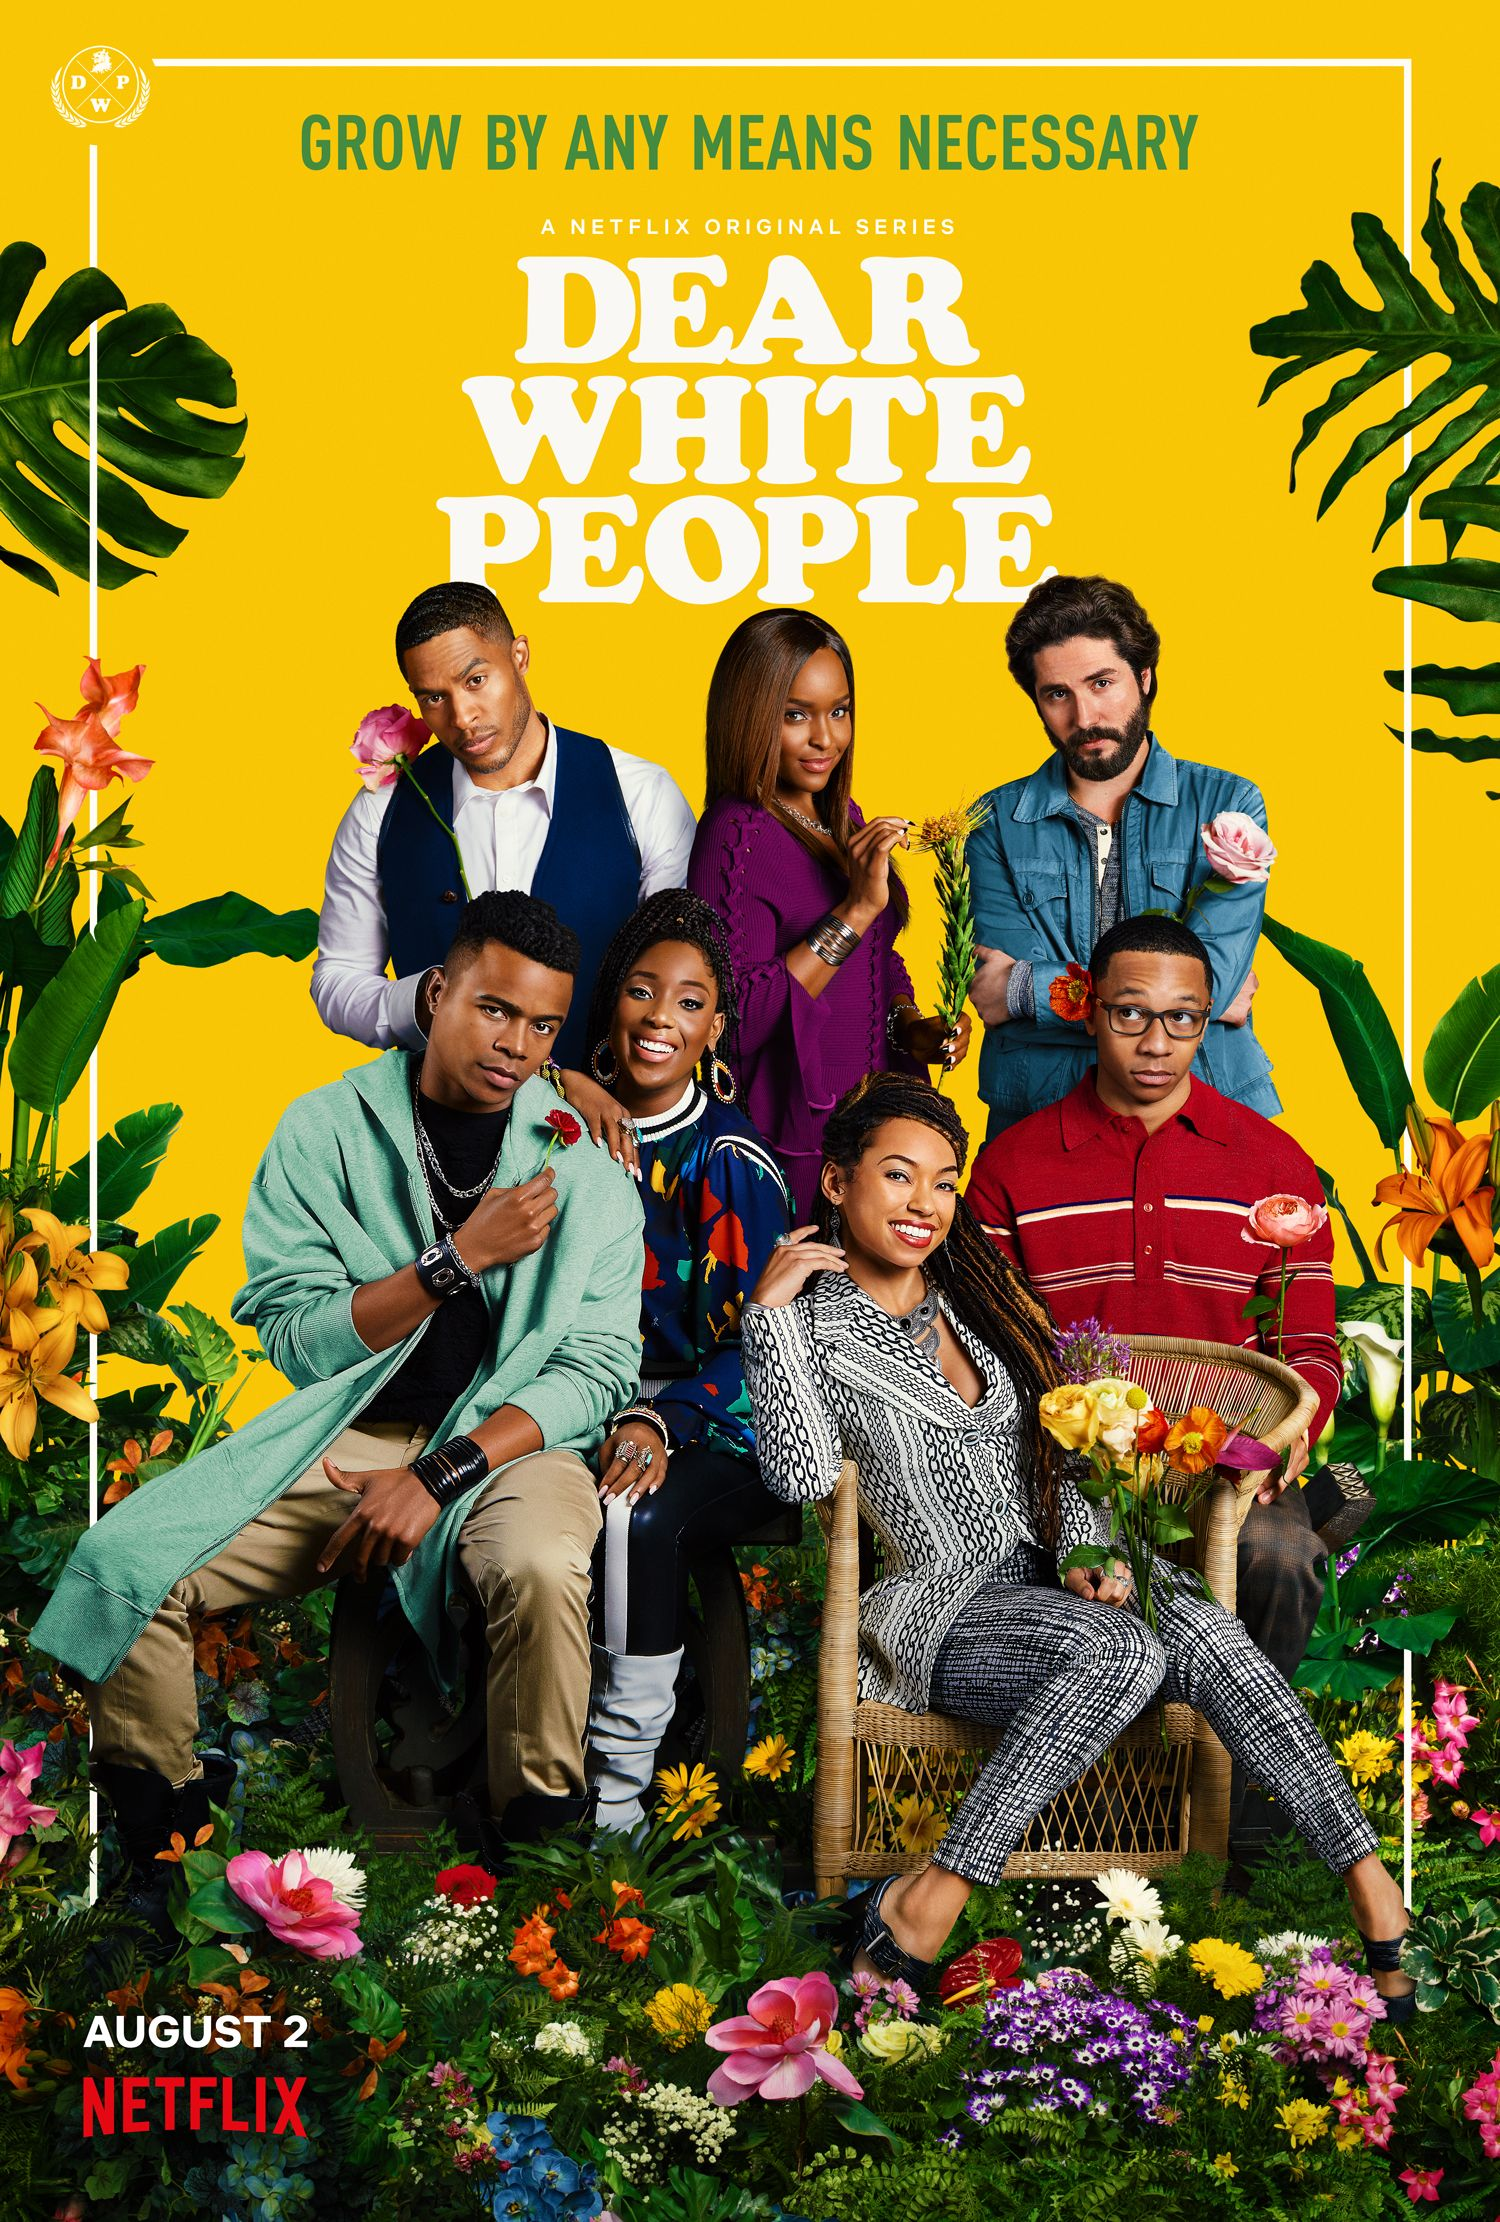 What's missing from Dear White People?